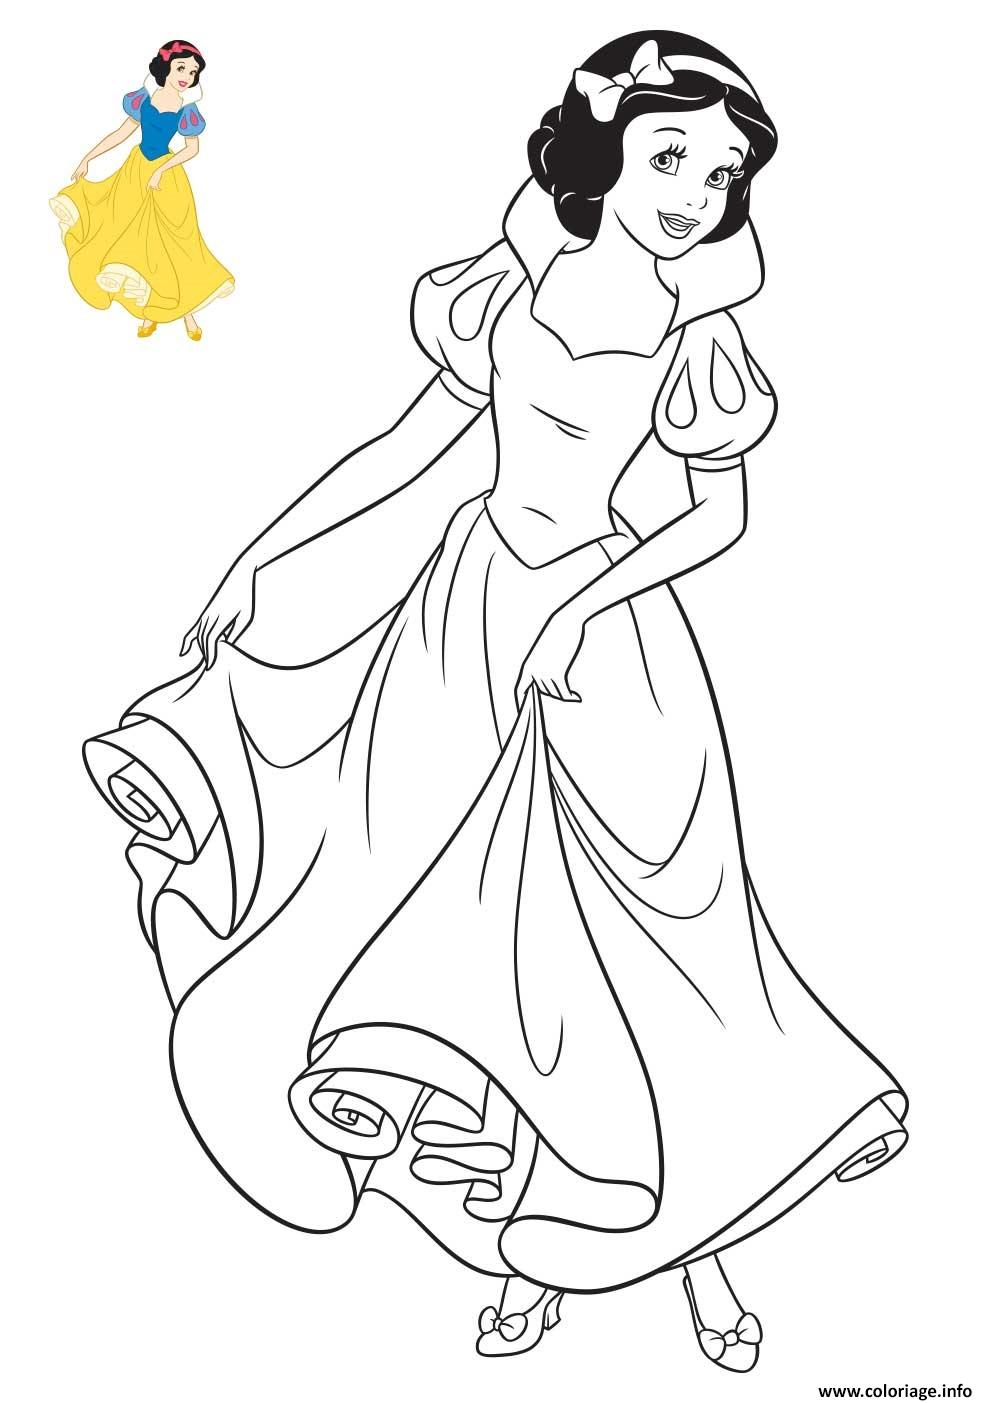 Coloriage princesse disney blanche neige - Dessin de disney facile ...